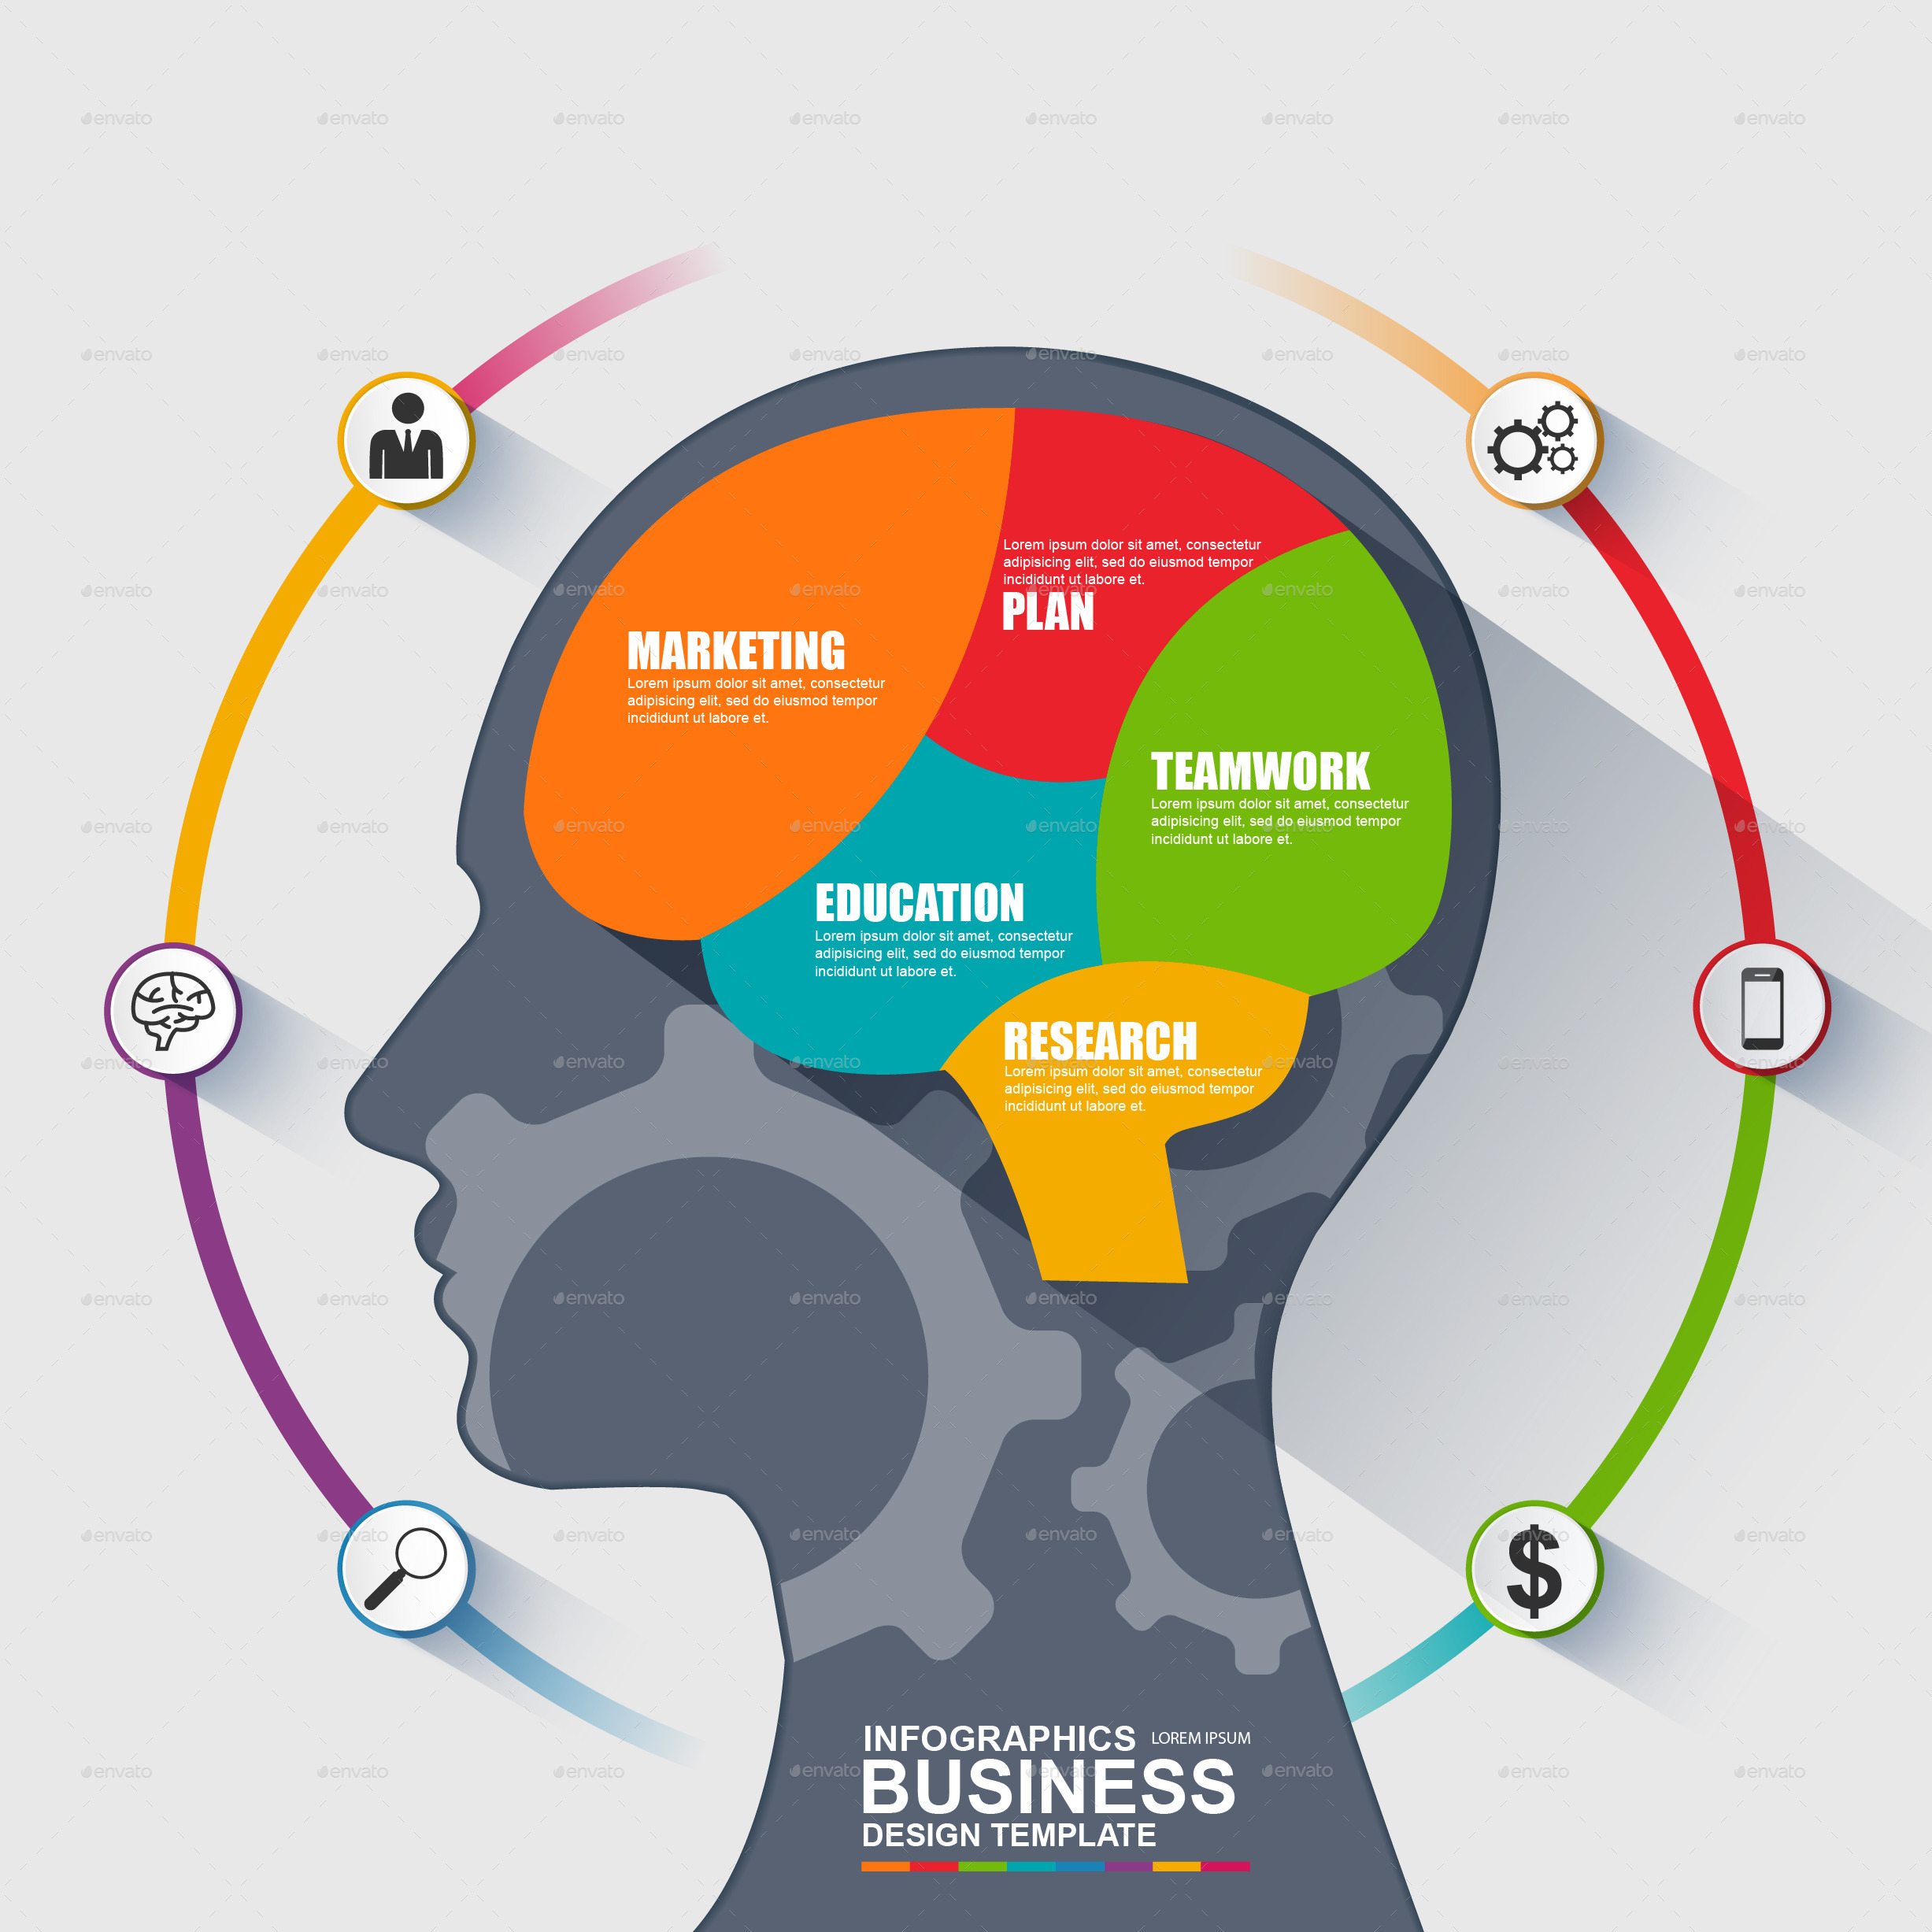 Infographic Business Brain Vector Design By Alexdndz